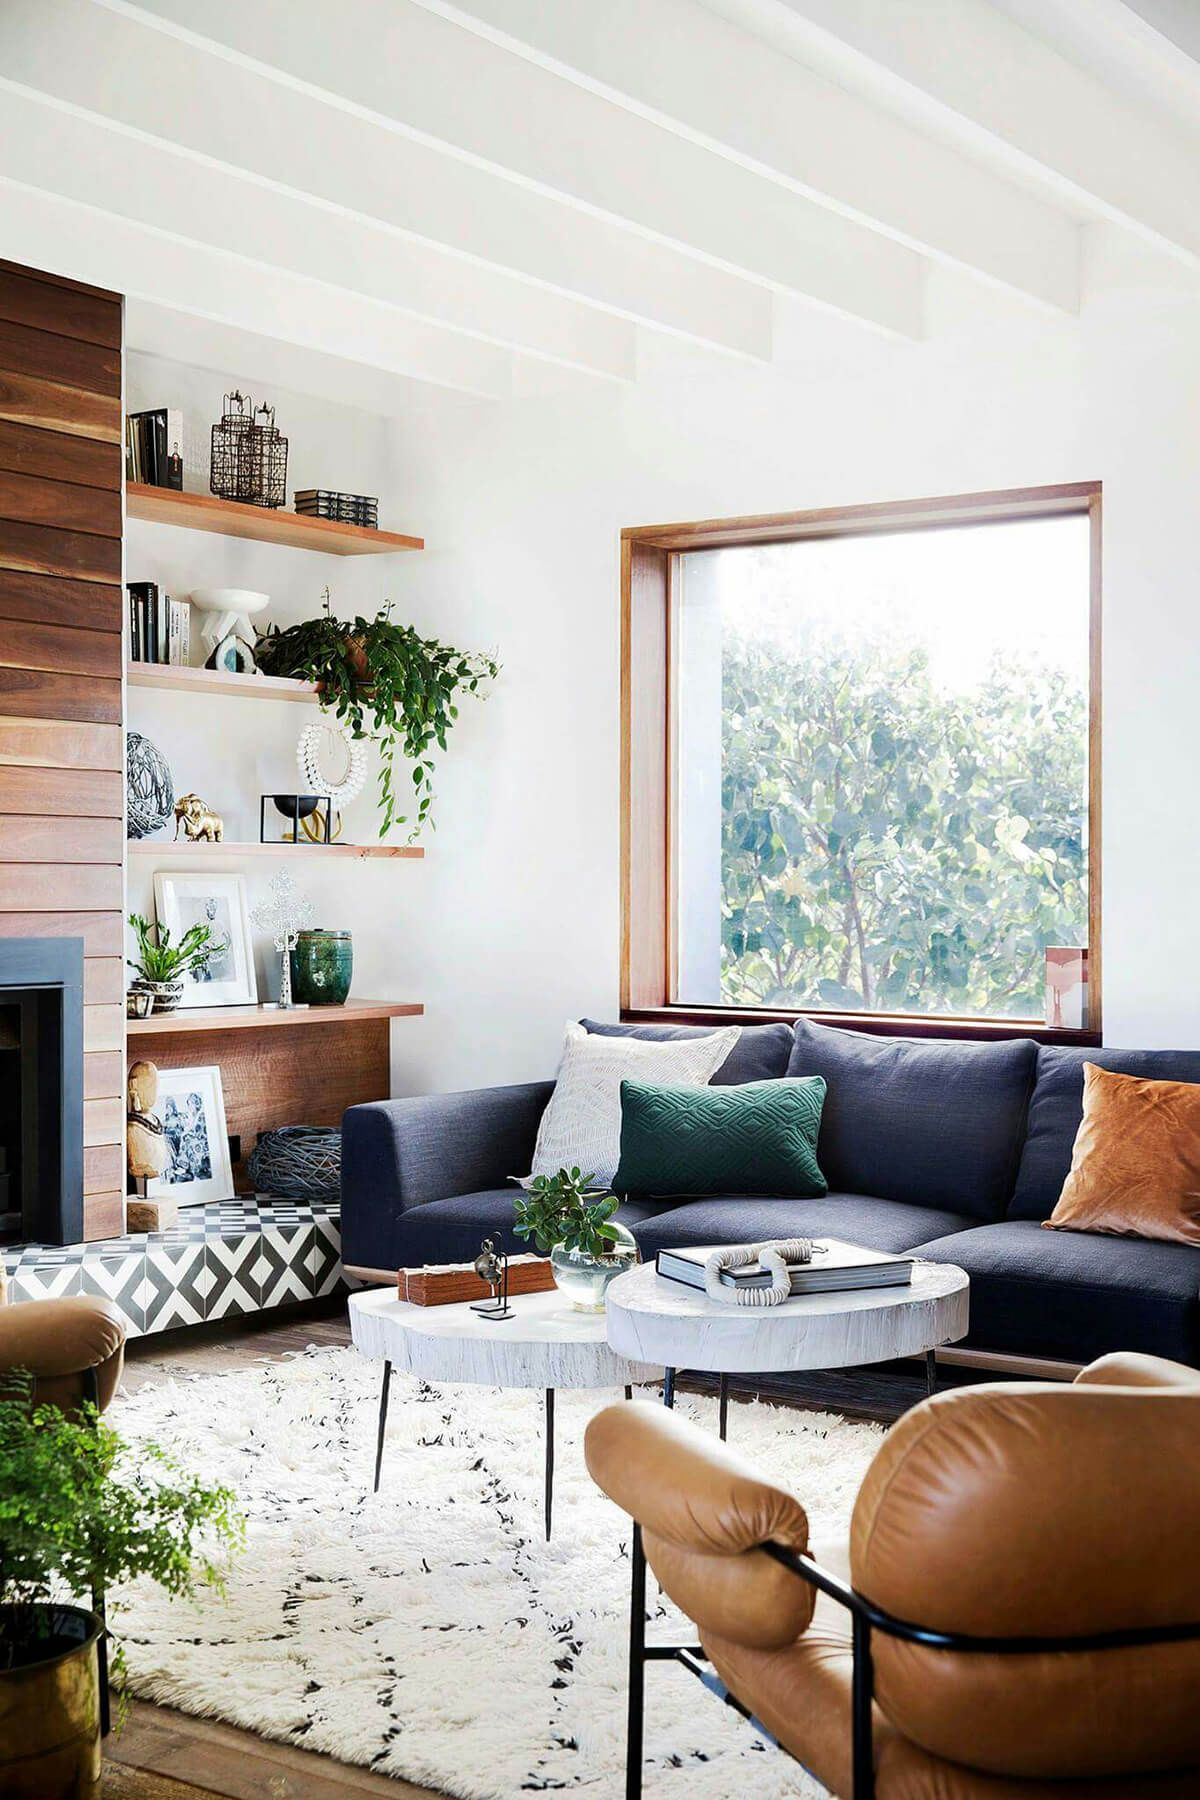 26 Stylish Ways Modern Living Room Decorating Ideas Can Make Your Fair Cozy Modern Living Room Design Inspiration